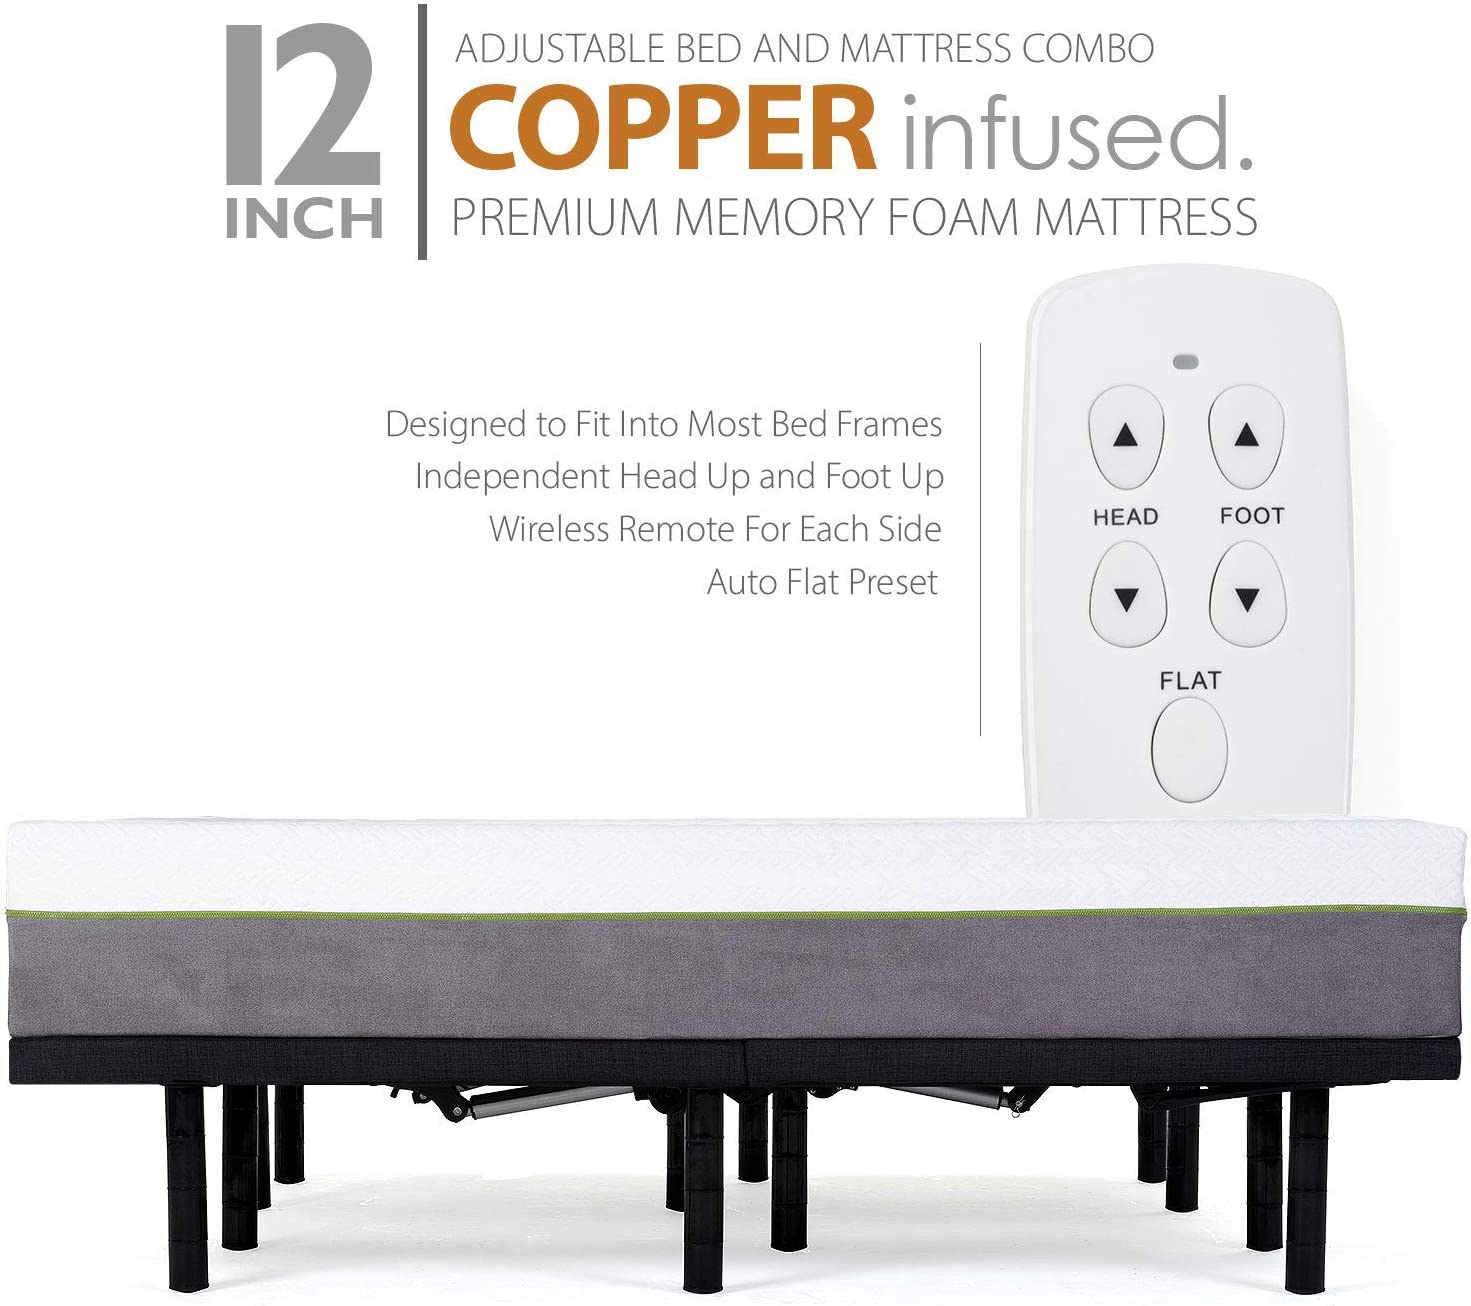 Adjustable Bed Frame and 12 Inch Copper Infused Cool Memory Foam Mattress Medium Firm Feel CertiPUR-US Certified Full